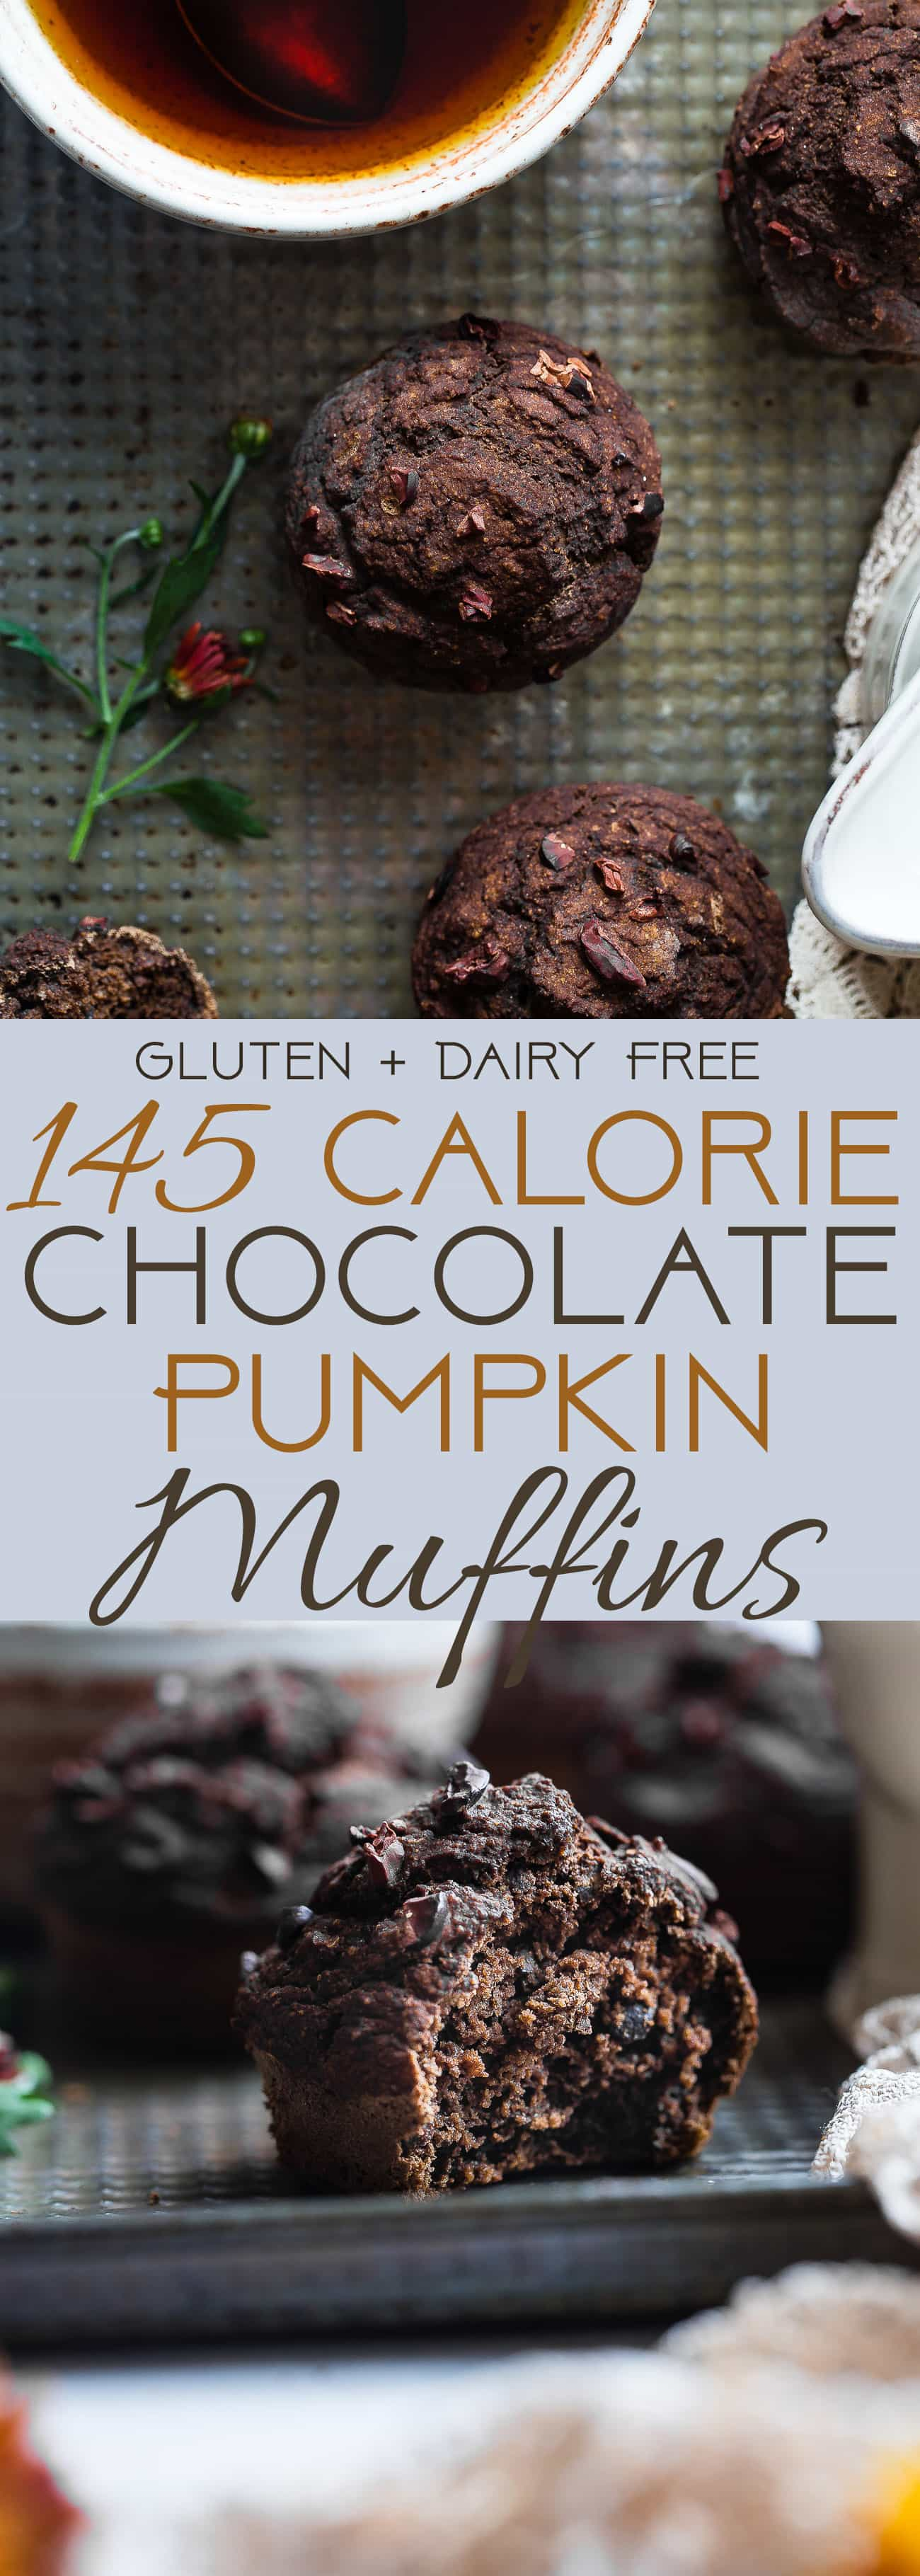 Healthy Gluten Free Chocolate Pumpkin Muffins - SOmoist and chewy! Made with whole grains, dairy free, low fat, only 145 calories! Perfect for breakfast or snack and kid friendly too! | Foodfaithfitness.com | @FoodFaitFit | healthy chocolate muffins. healthy pumpkin muffins. easy pumpkin muffins. sugar free muffins. gluten free pumpkin muffins. gluten free chocolate muffins. low fat muffins.